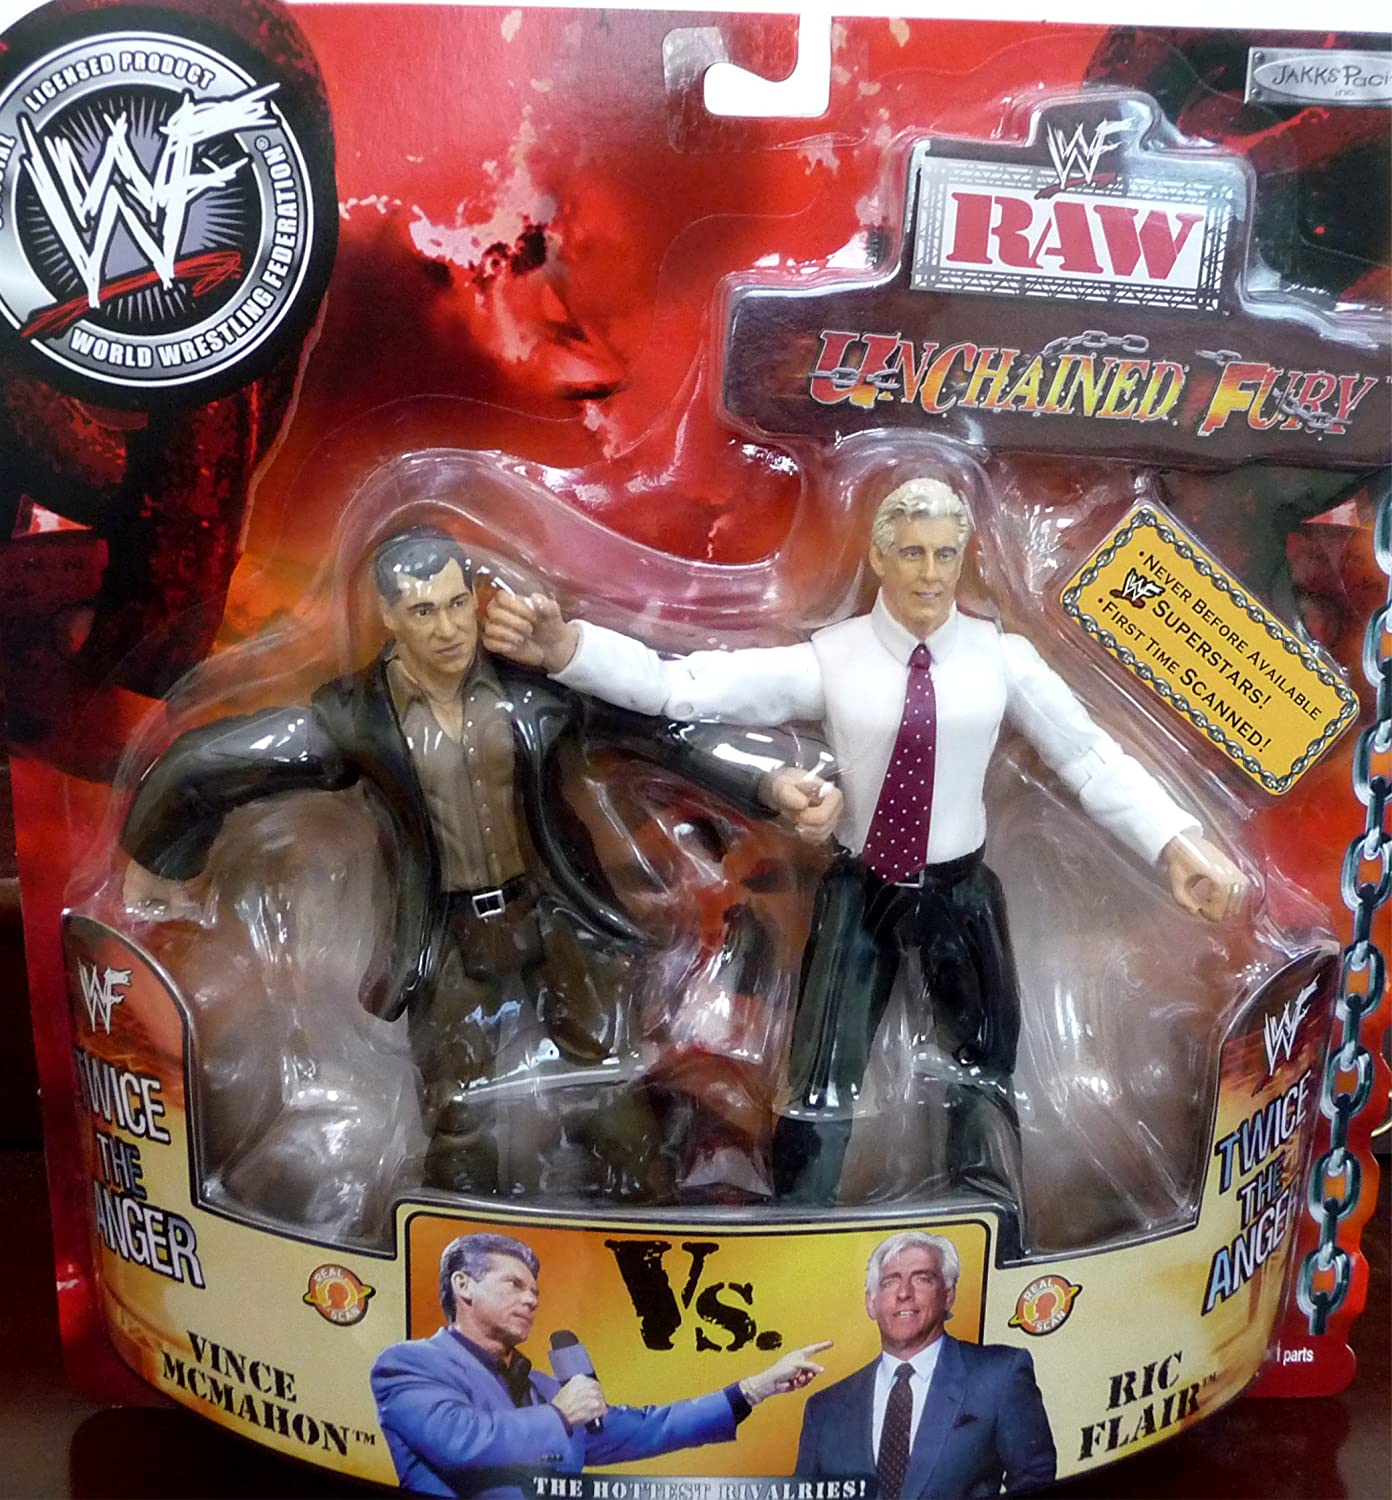 RIC FLAIR vs. MR. VINCE MCMAHON WWE WWF Raw Unchained Fury Figures by Jakks